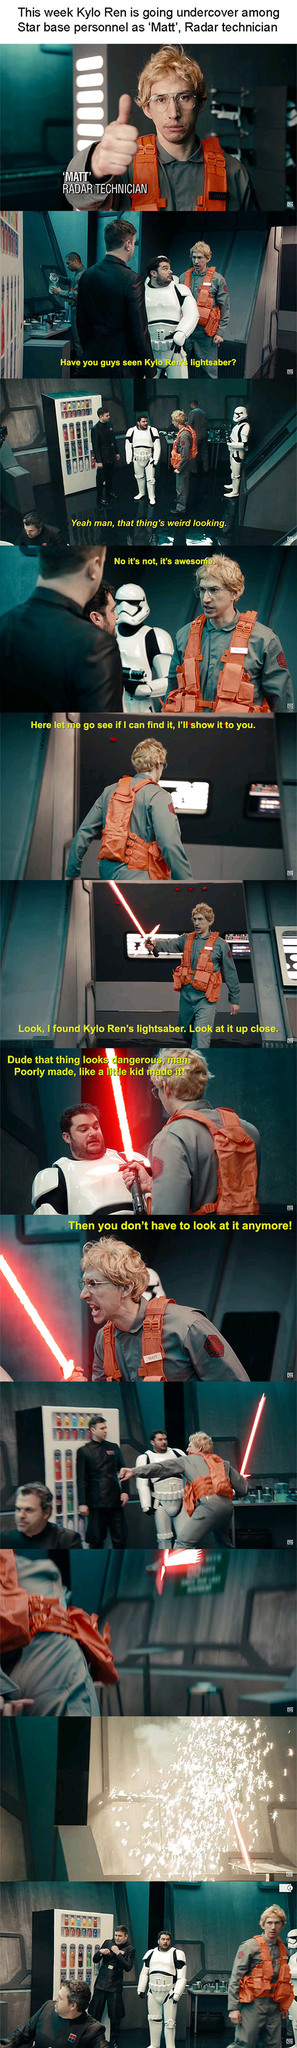 Star Wars Undercover Boss Starkiller Base Snl Meme By Valeriaa